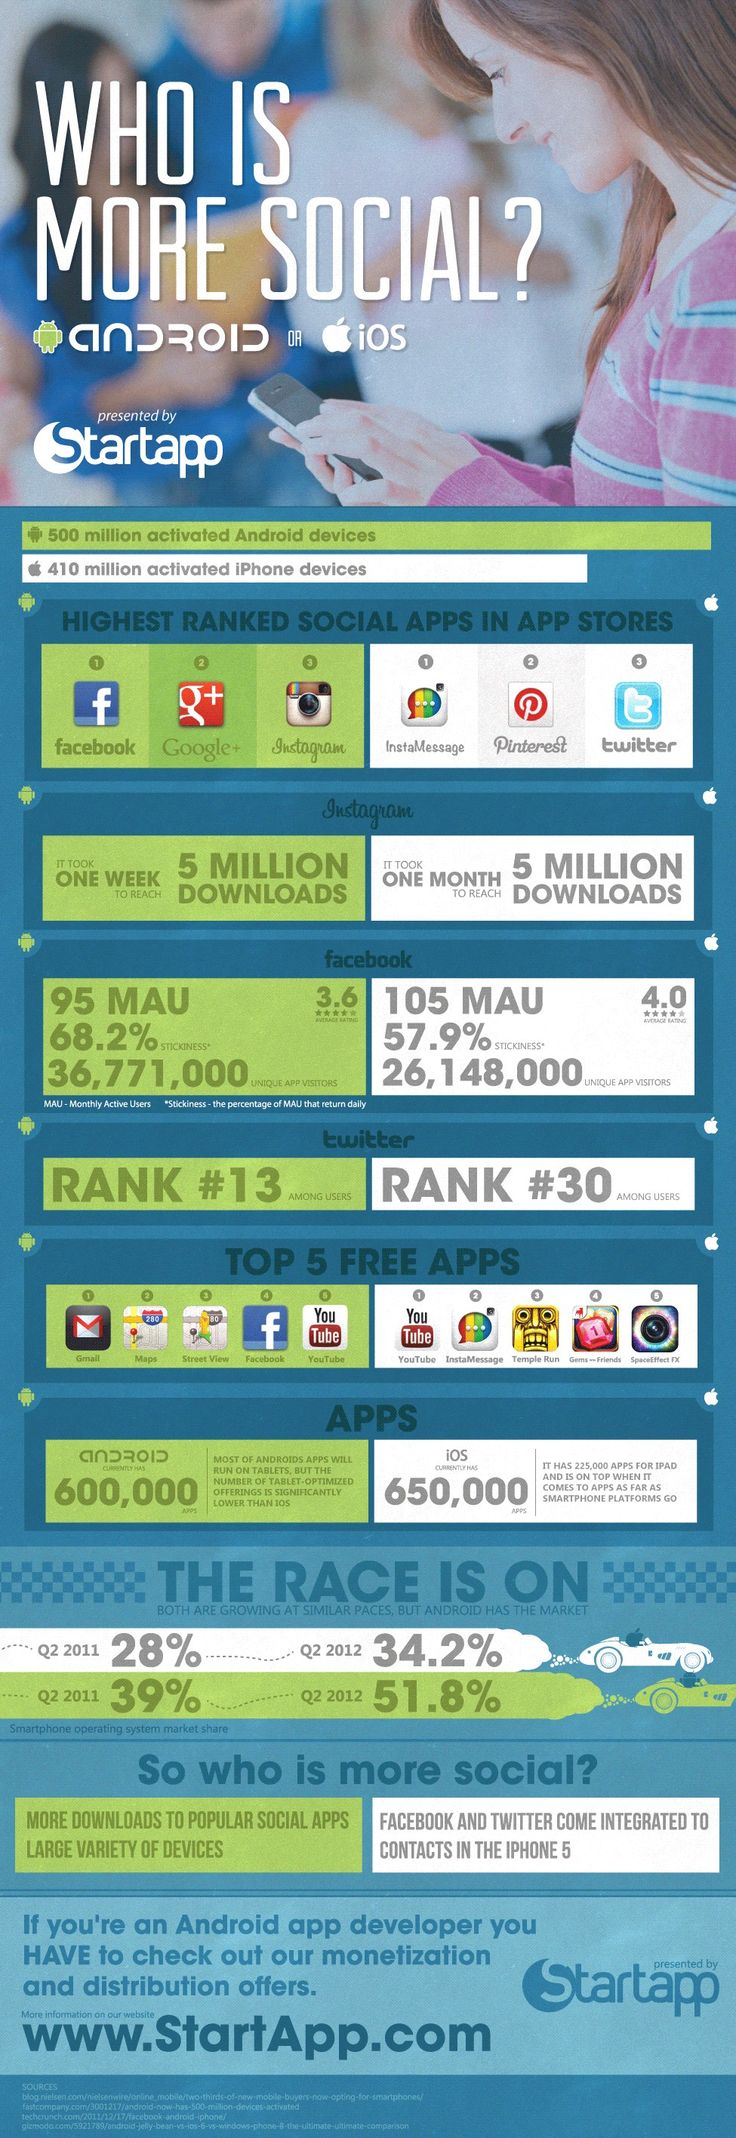 Android vs. iPhone social media wars!